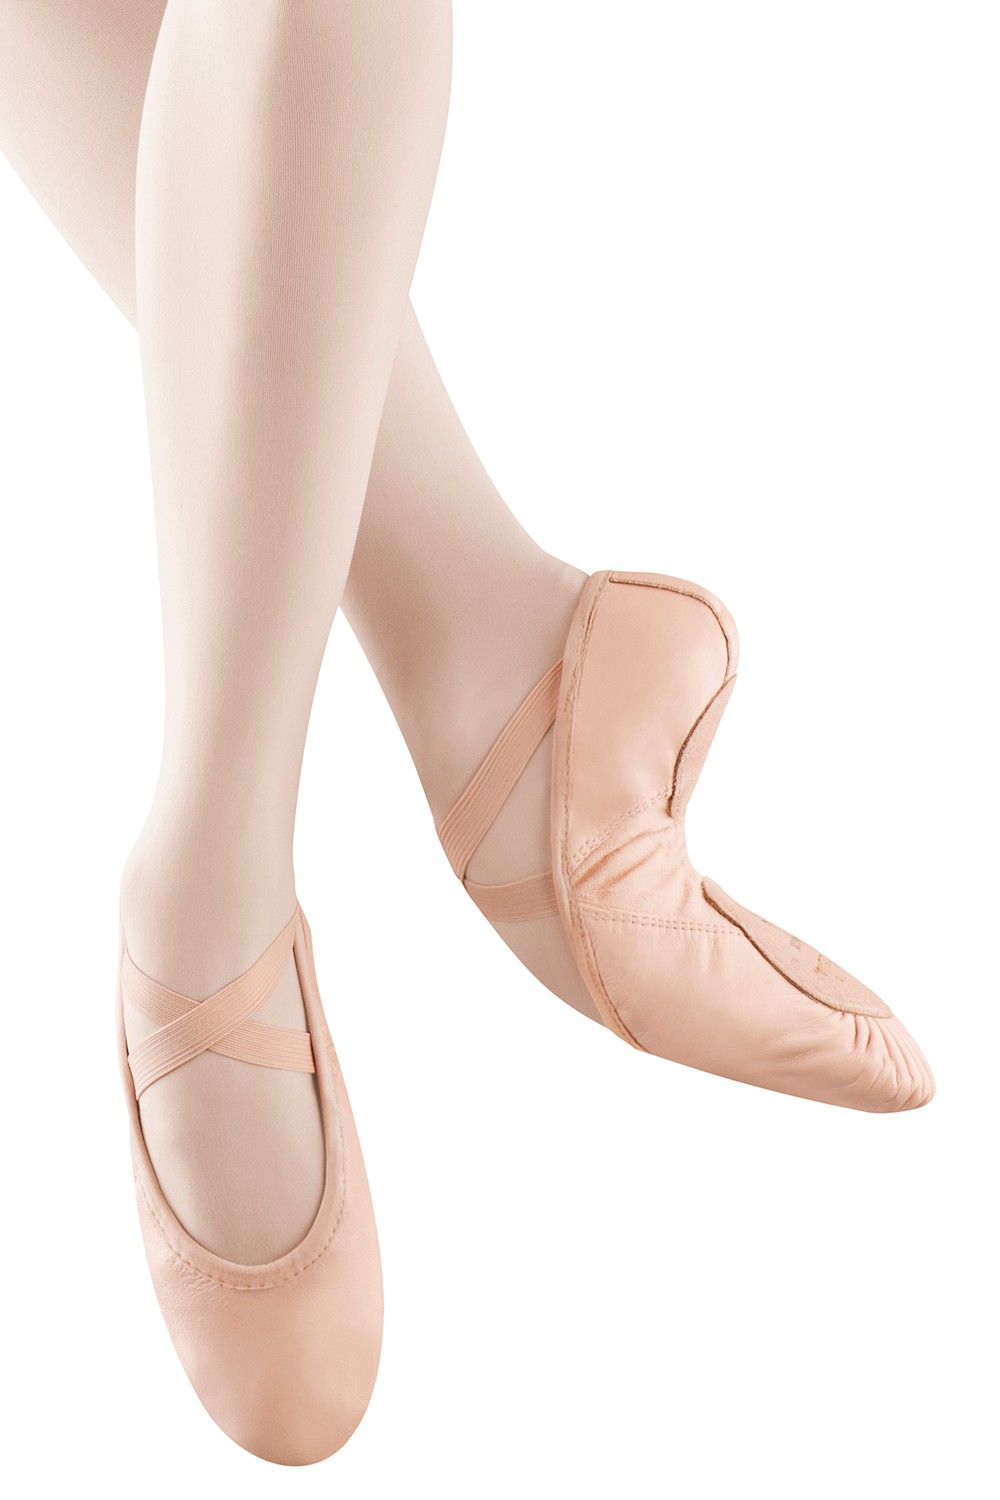 Medley Pointe Shoes